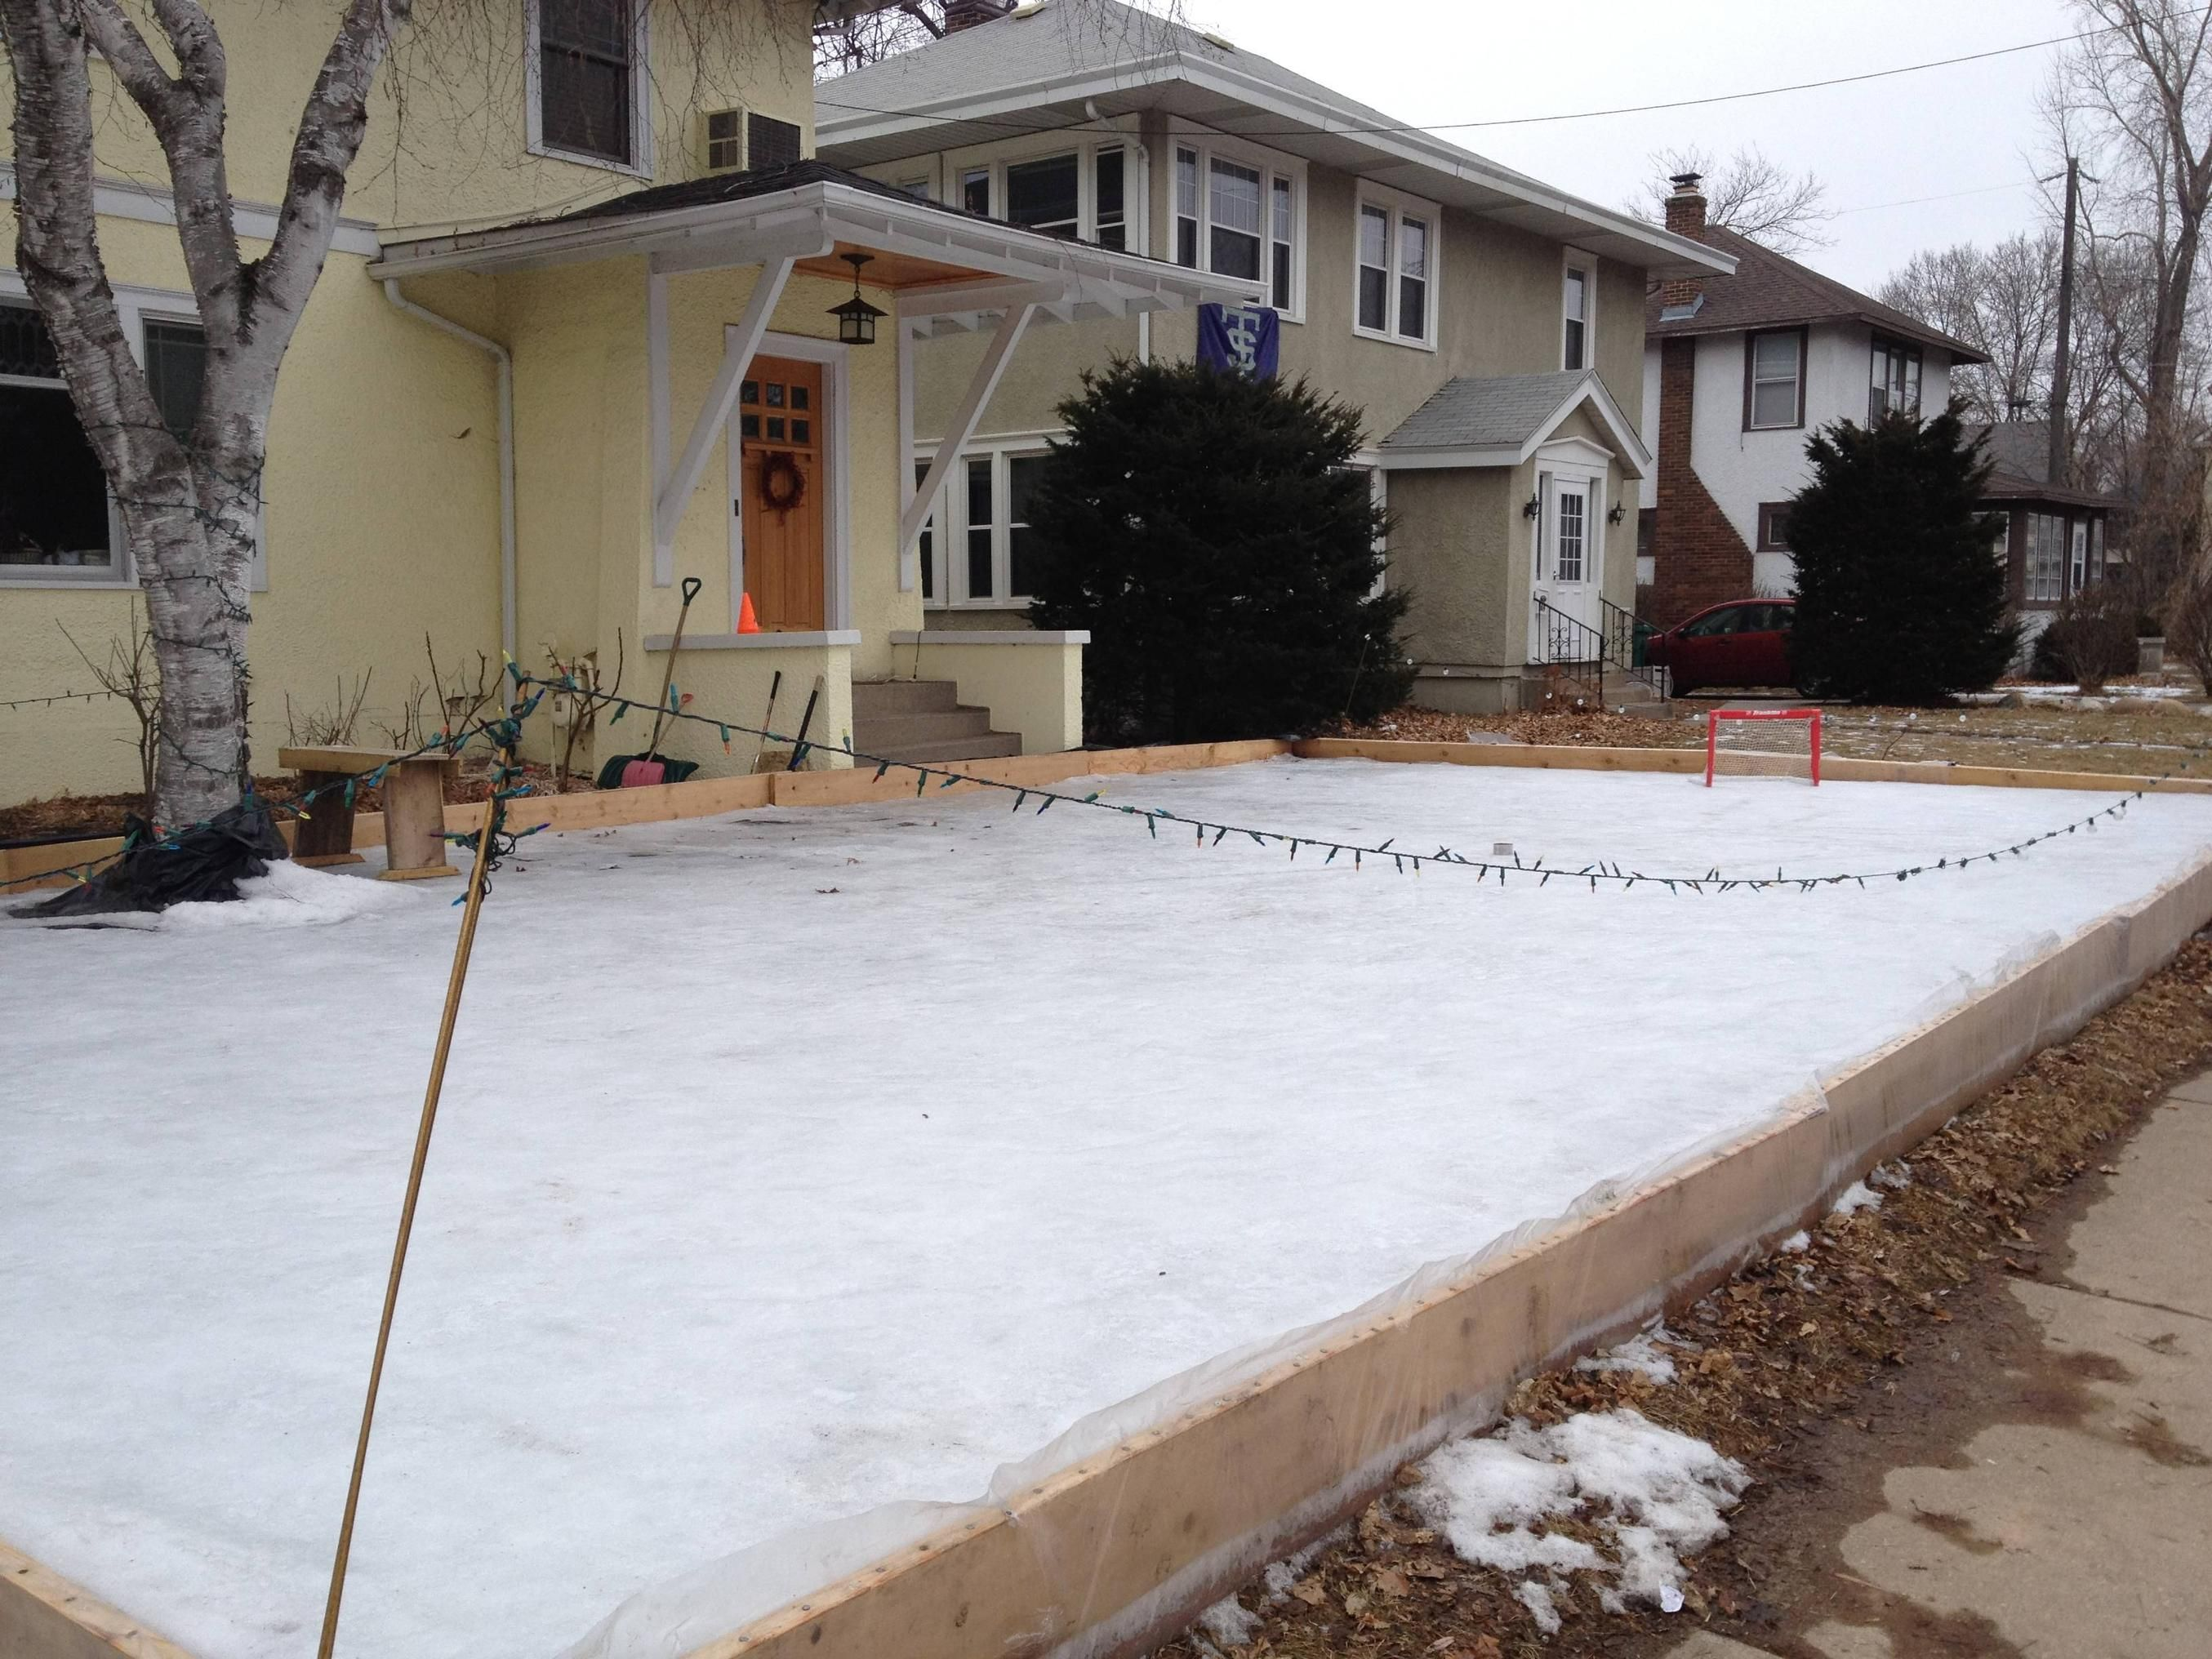 My neighbors built an ice rink in their front yard ...